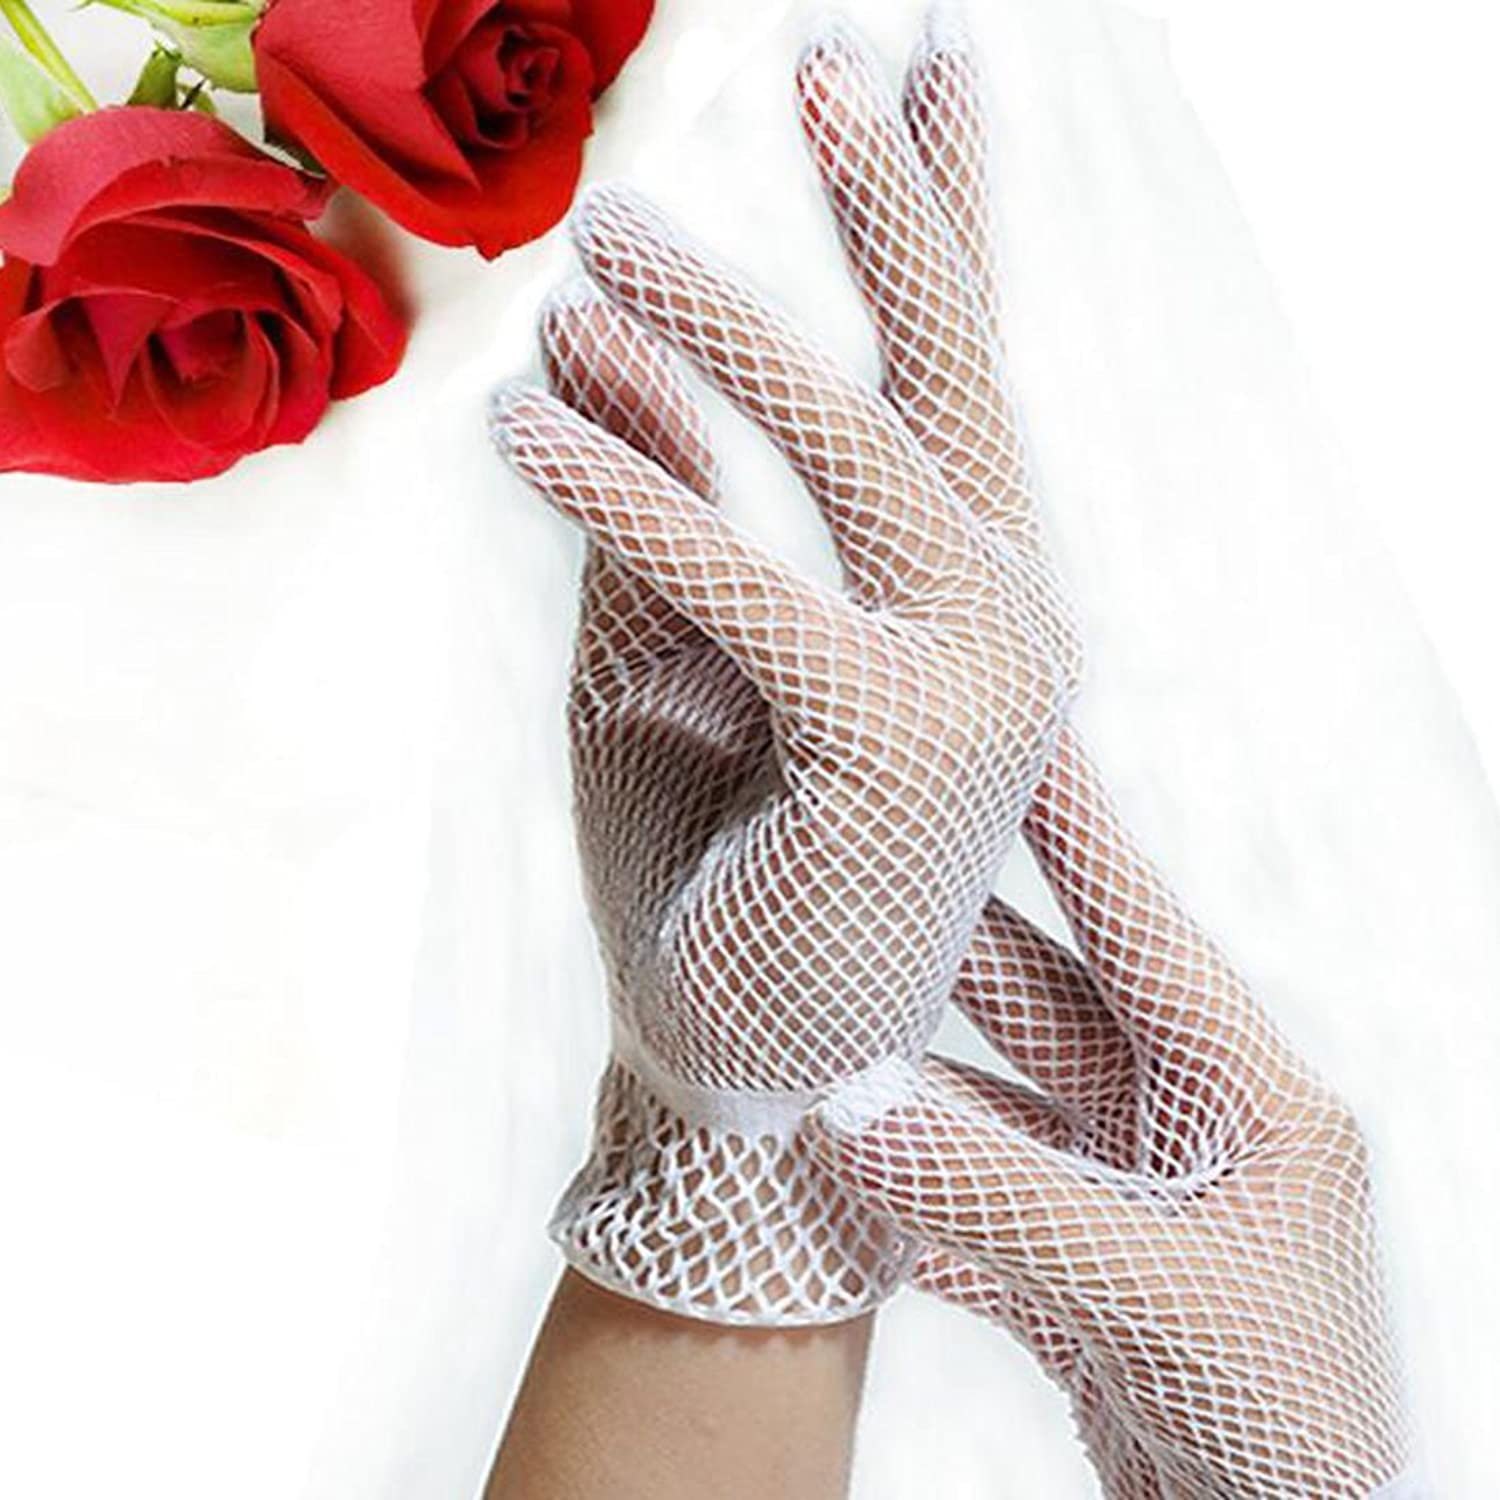 Victorian Gloves | Victorian Accessories Fishnet Mesh Gloves Fashion Women Gloves Summer UV Protection Lace Glove White $2.11 AT vintagedancer.com